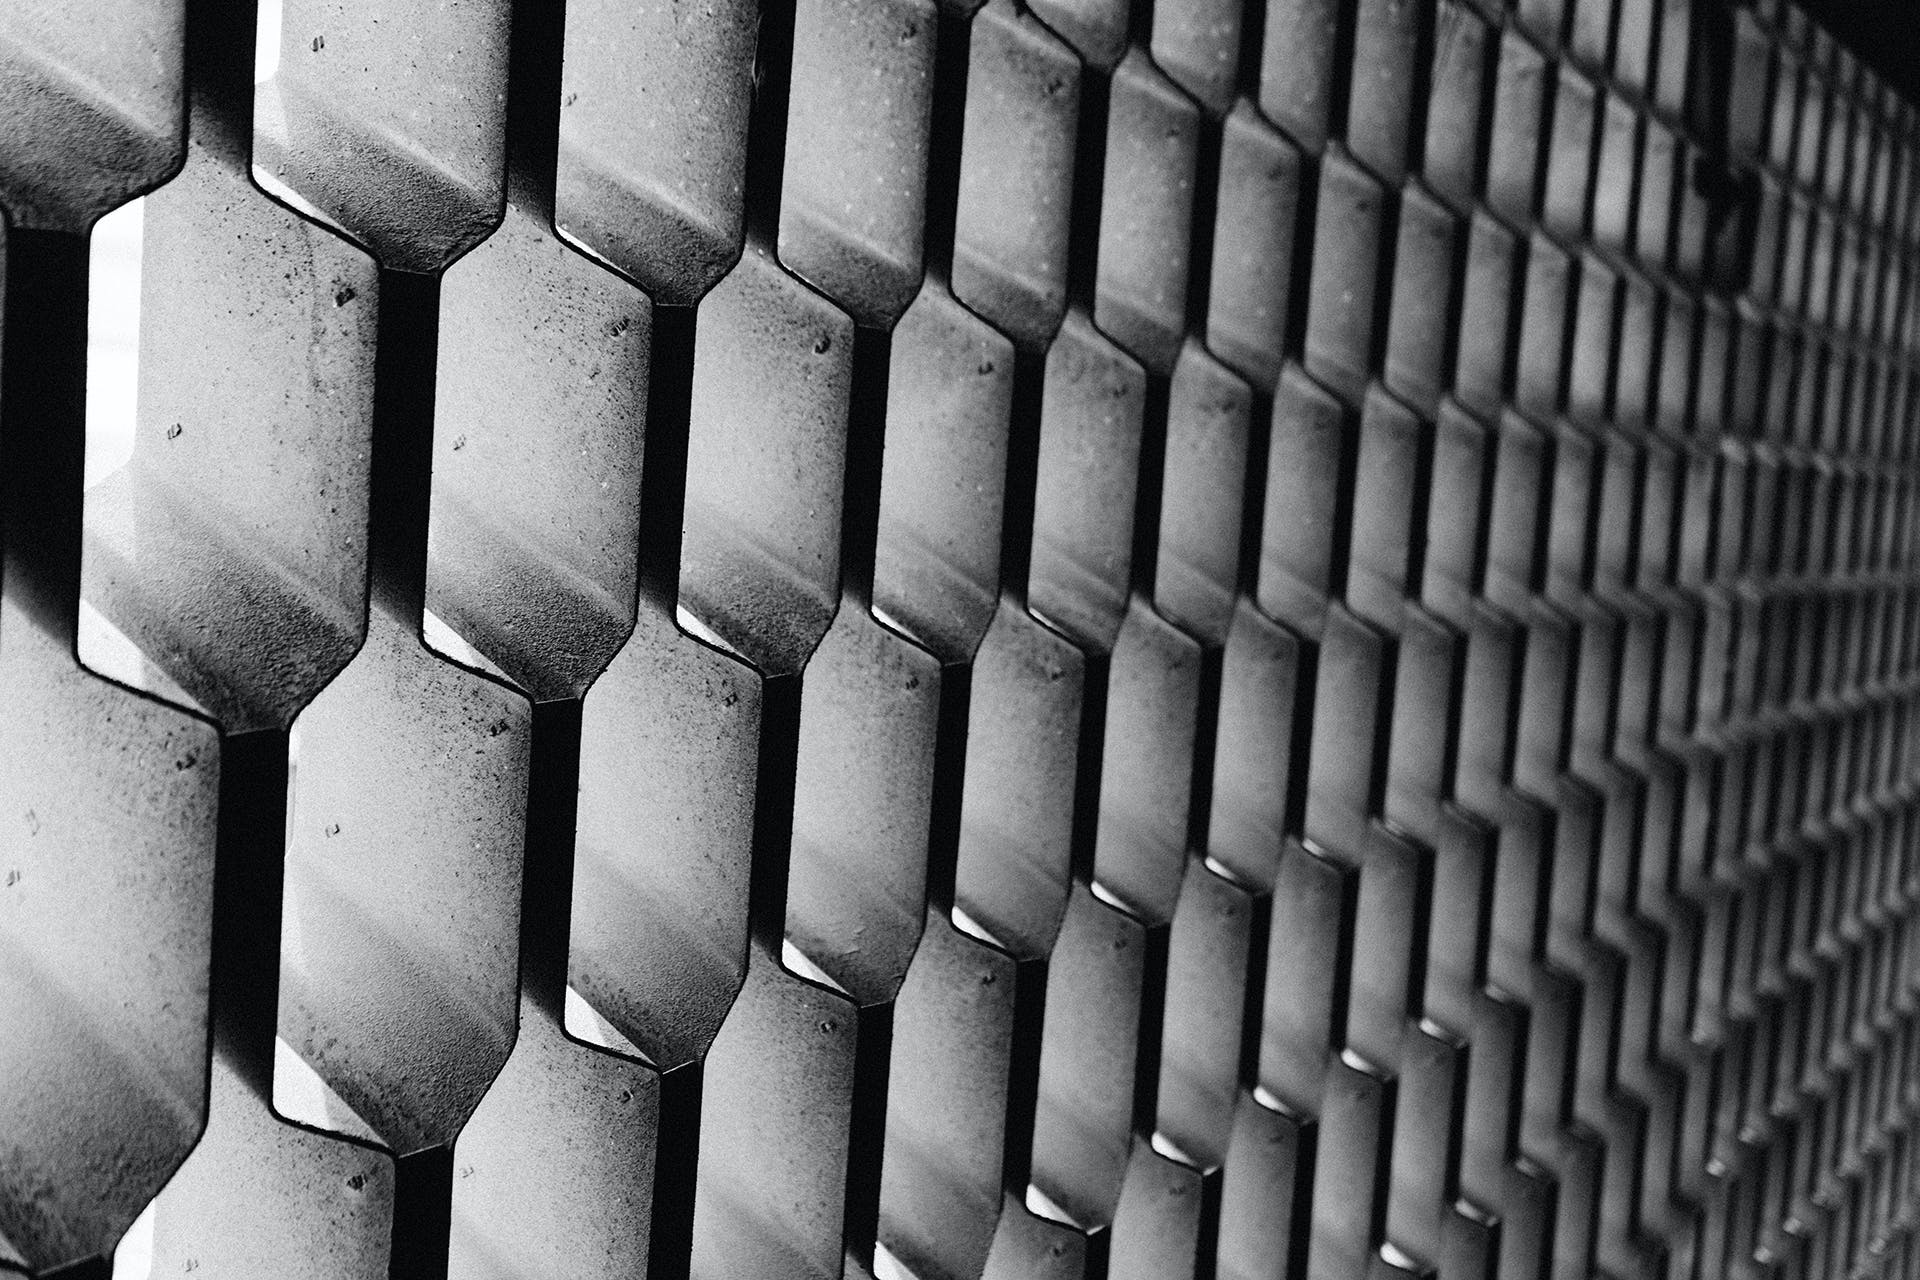 Grayscale Photography of Metal Cutout Wall